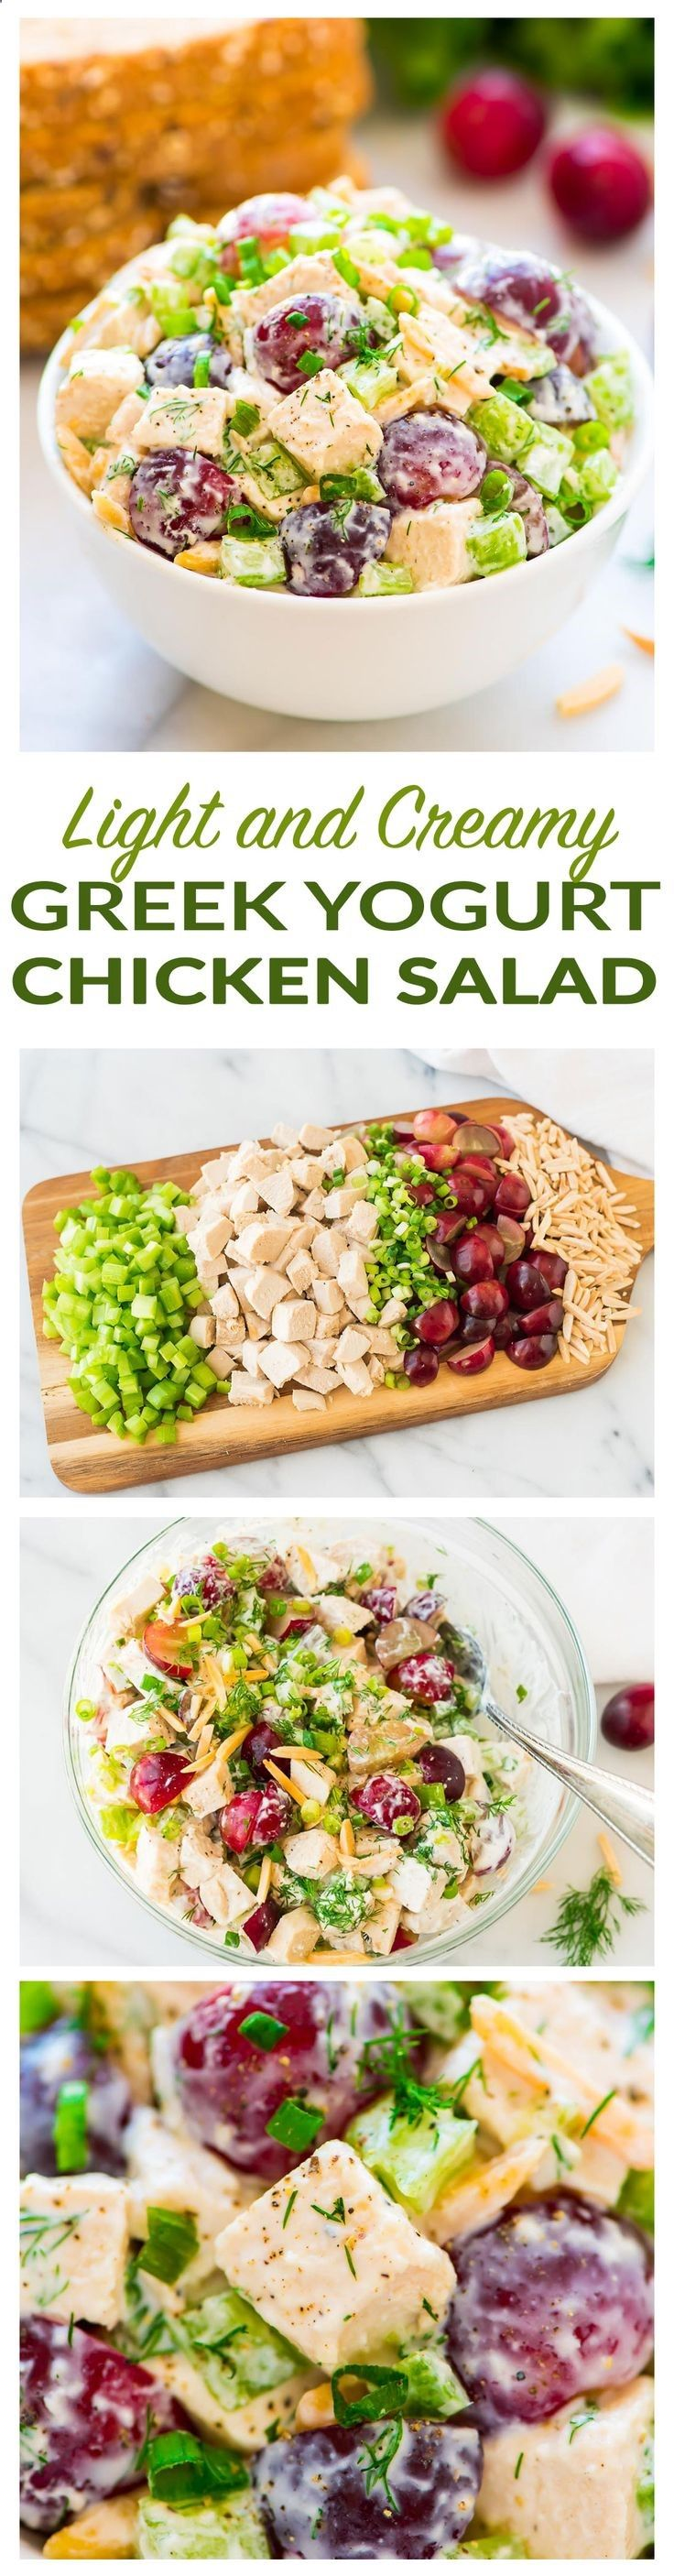 Skinny Greek Yogurt Chicken Salad with Grapes, Celery, and Fresh Dill. Creamy, cool, and crunchy! A quick, easy, healthy recipe that's perfect for sandwiches and salads. Omit honey for the 21 Day Fix diet - Recipe at wellplated.com | Well Plated